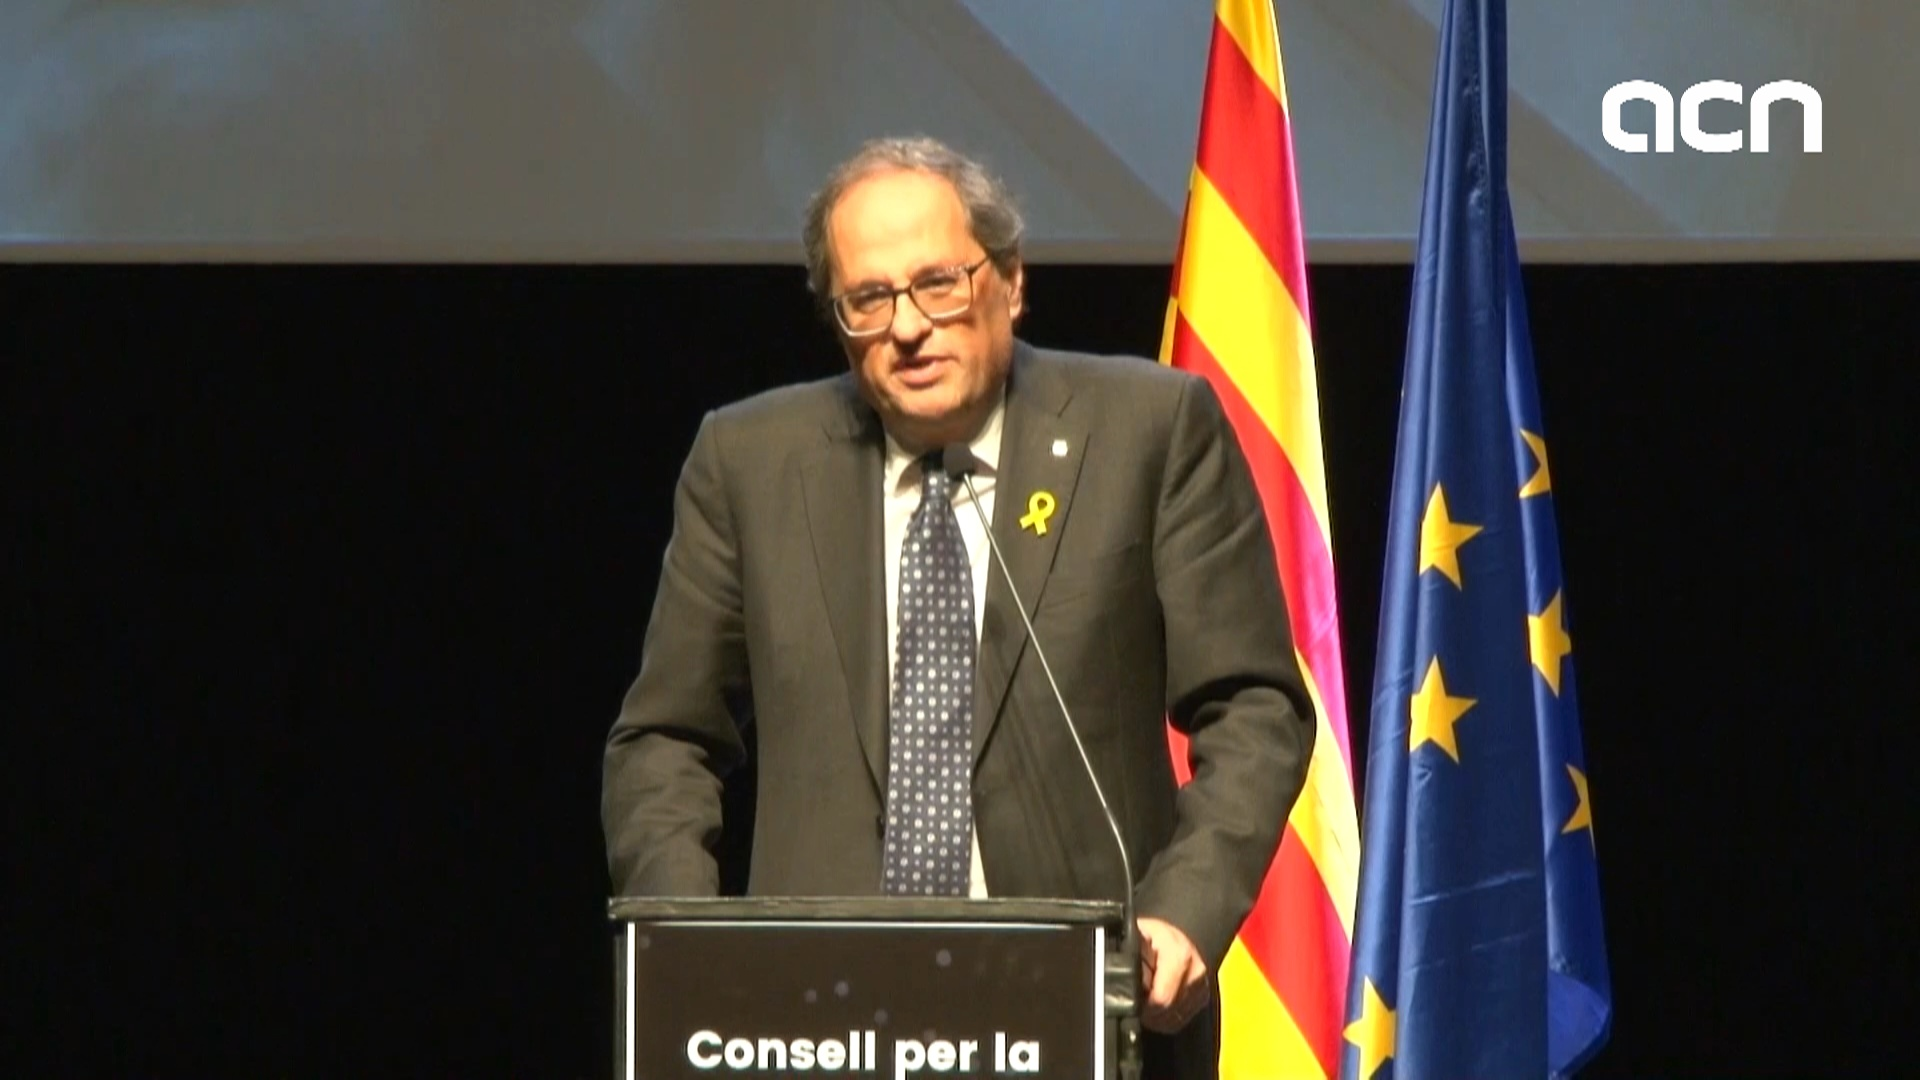 Catalan president Quim Torra speaks at the presentation for the Council for the Republic